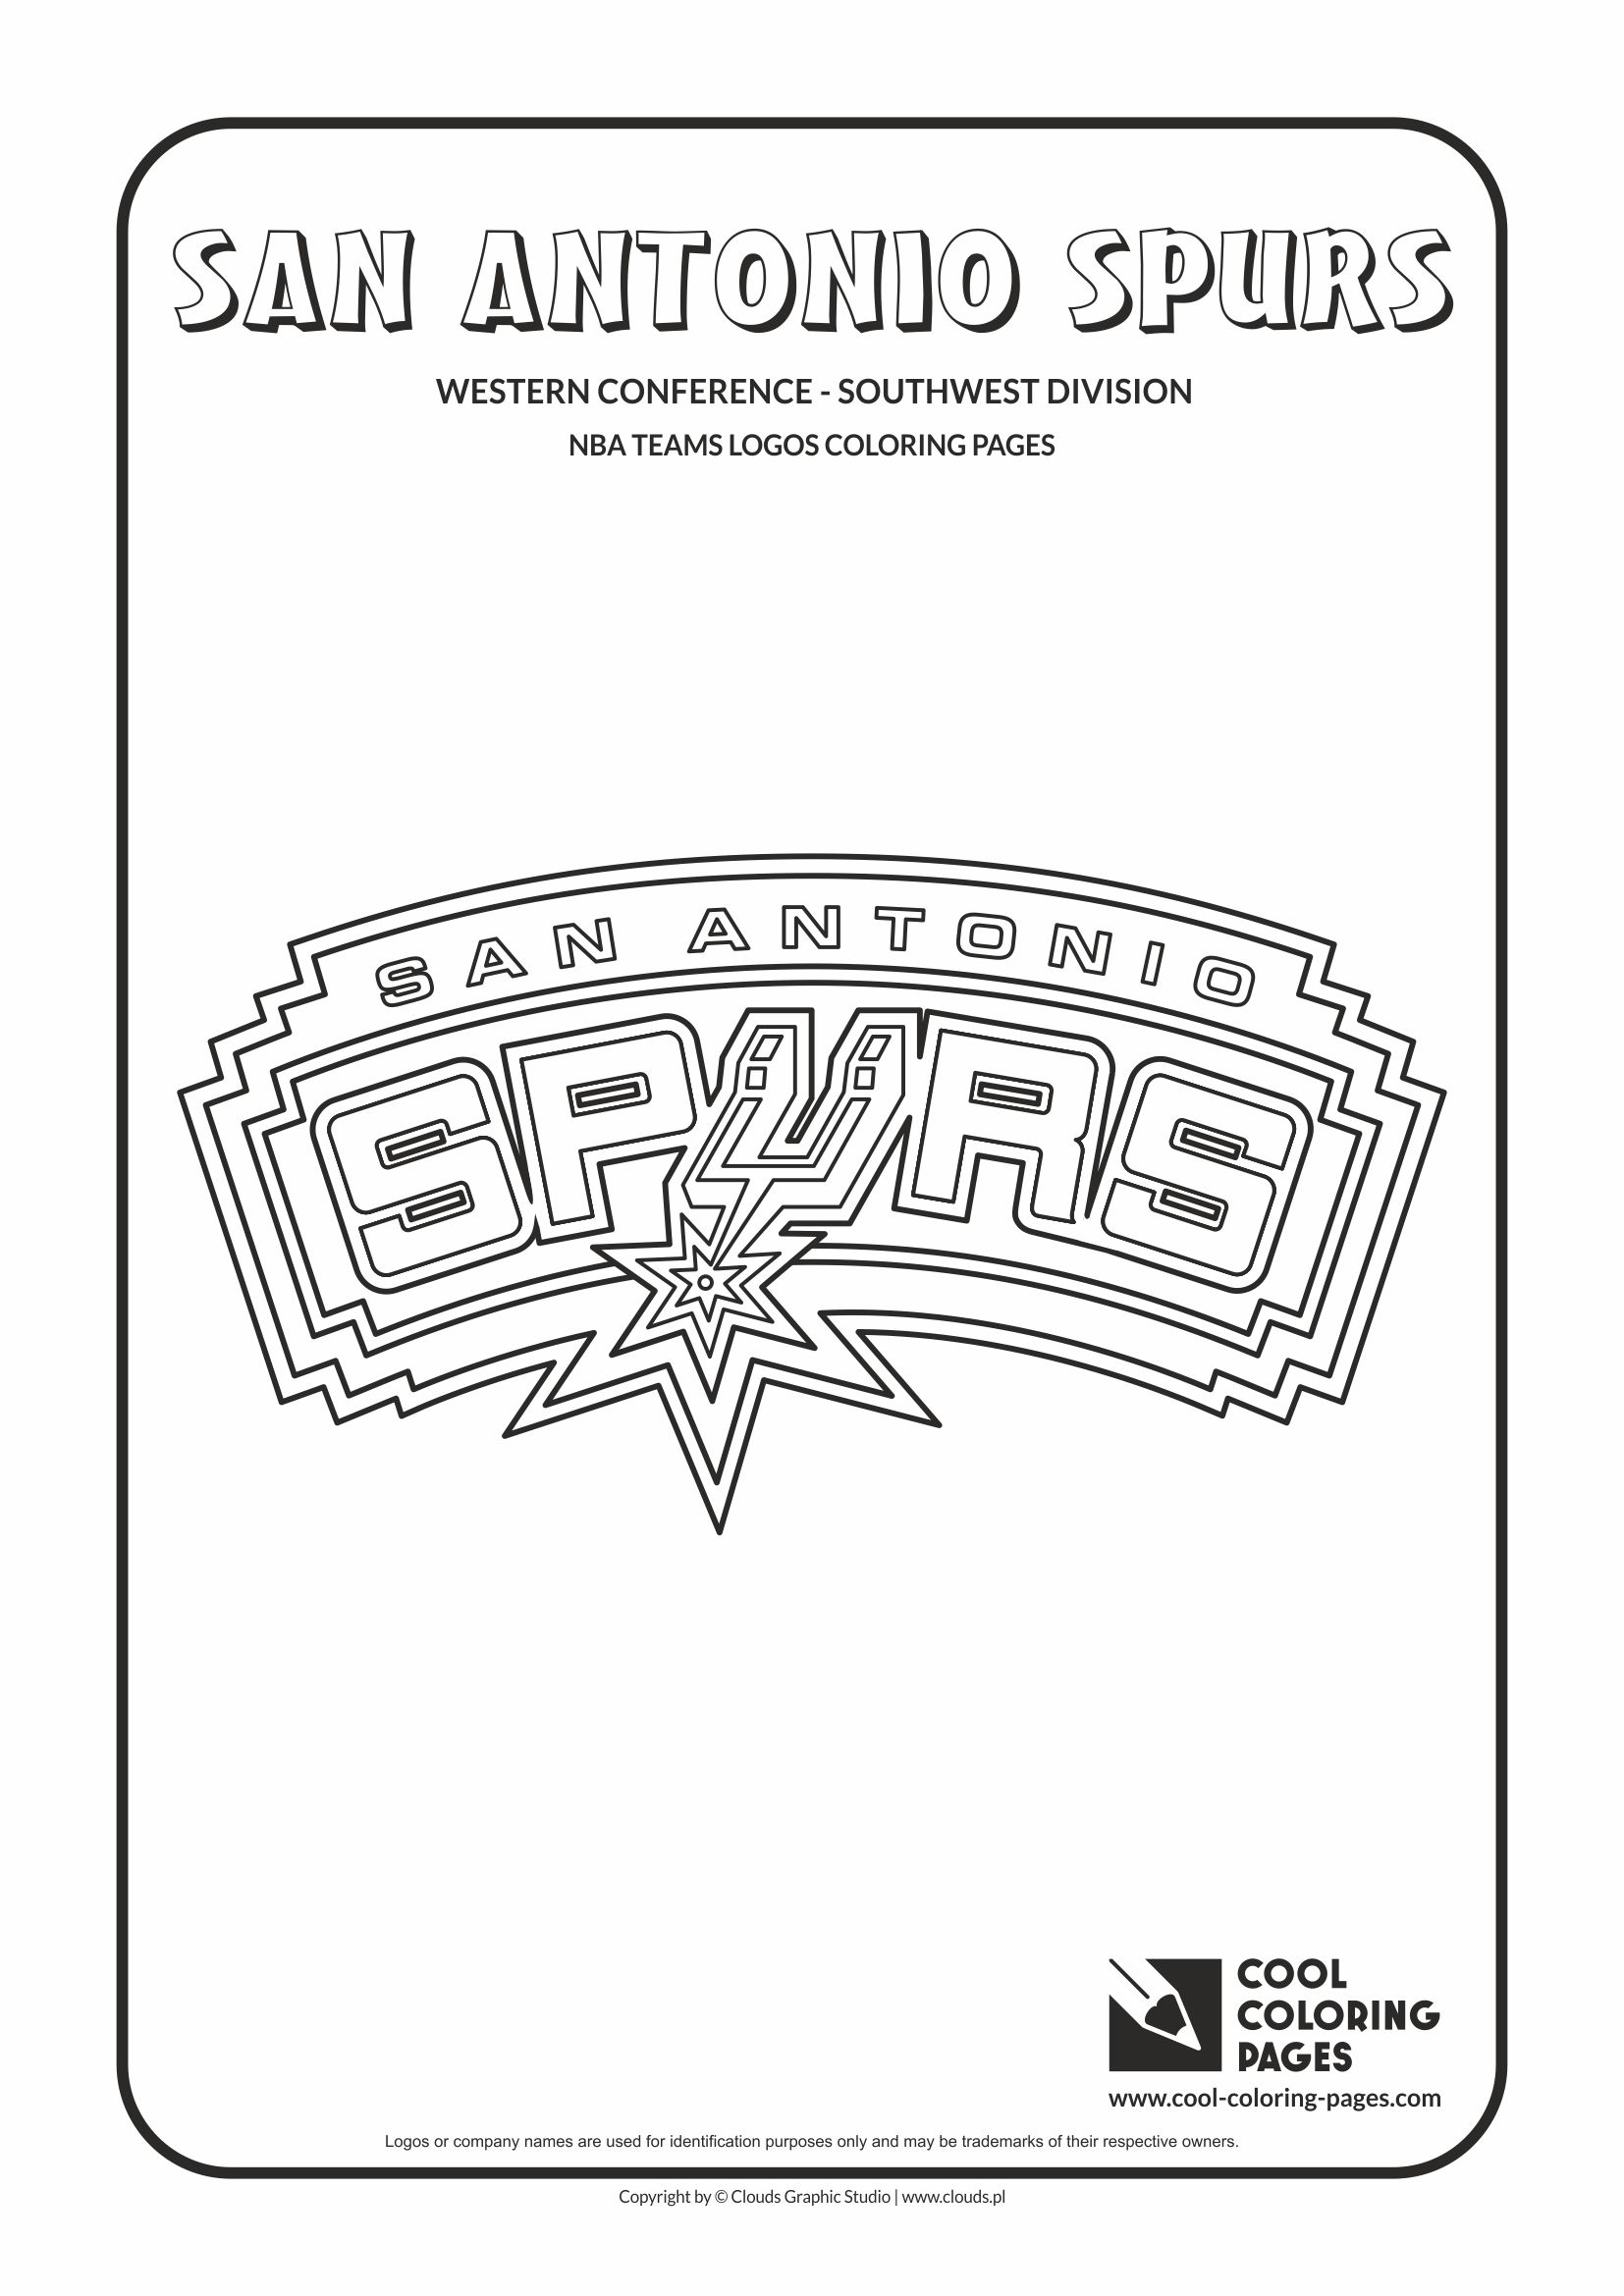 cool coloring pages nba basketball clubs logos western conference southwest division san